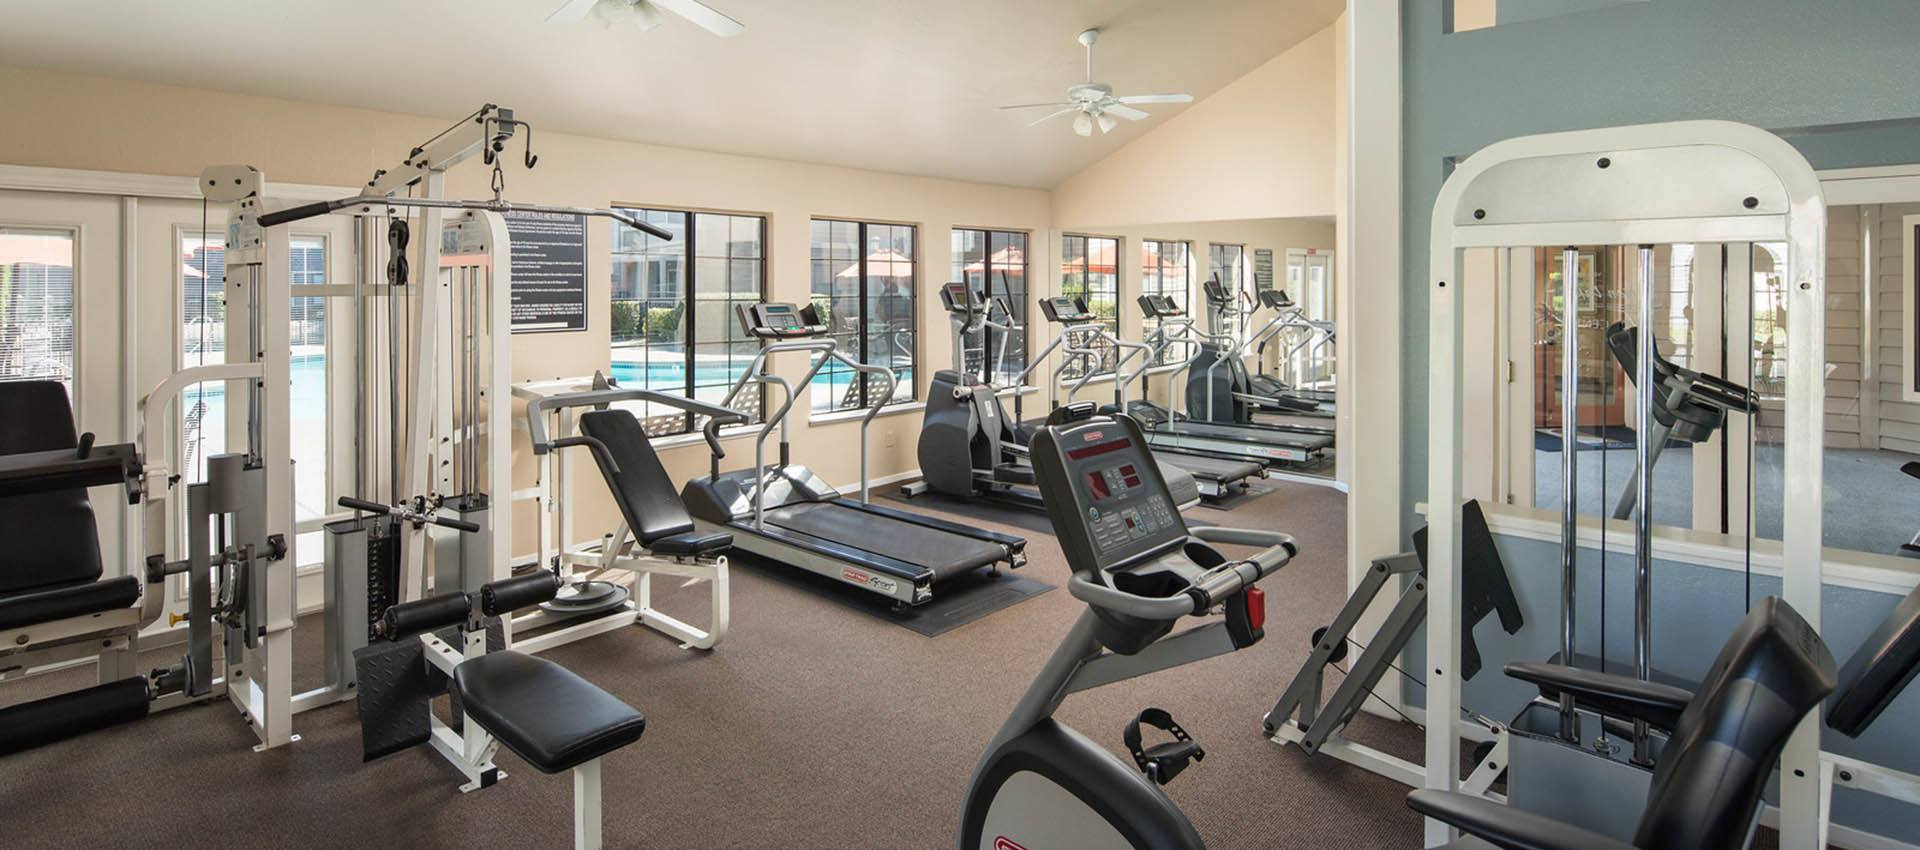 Well Equipped Fitness Center at Hidden Lake Condominium Rentals in Sacramento, CA